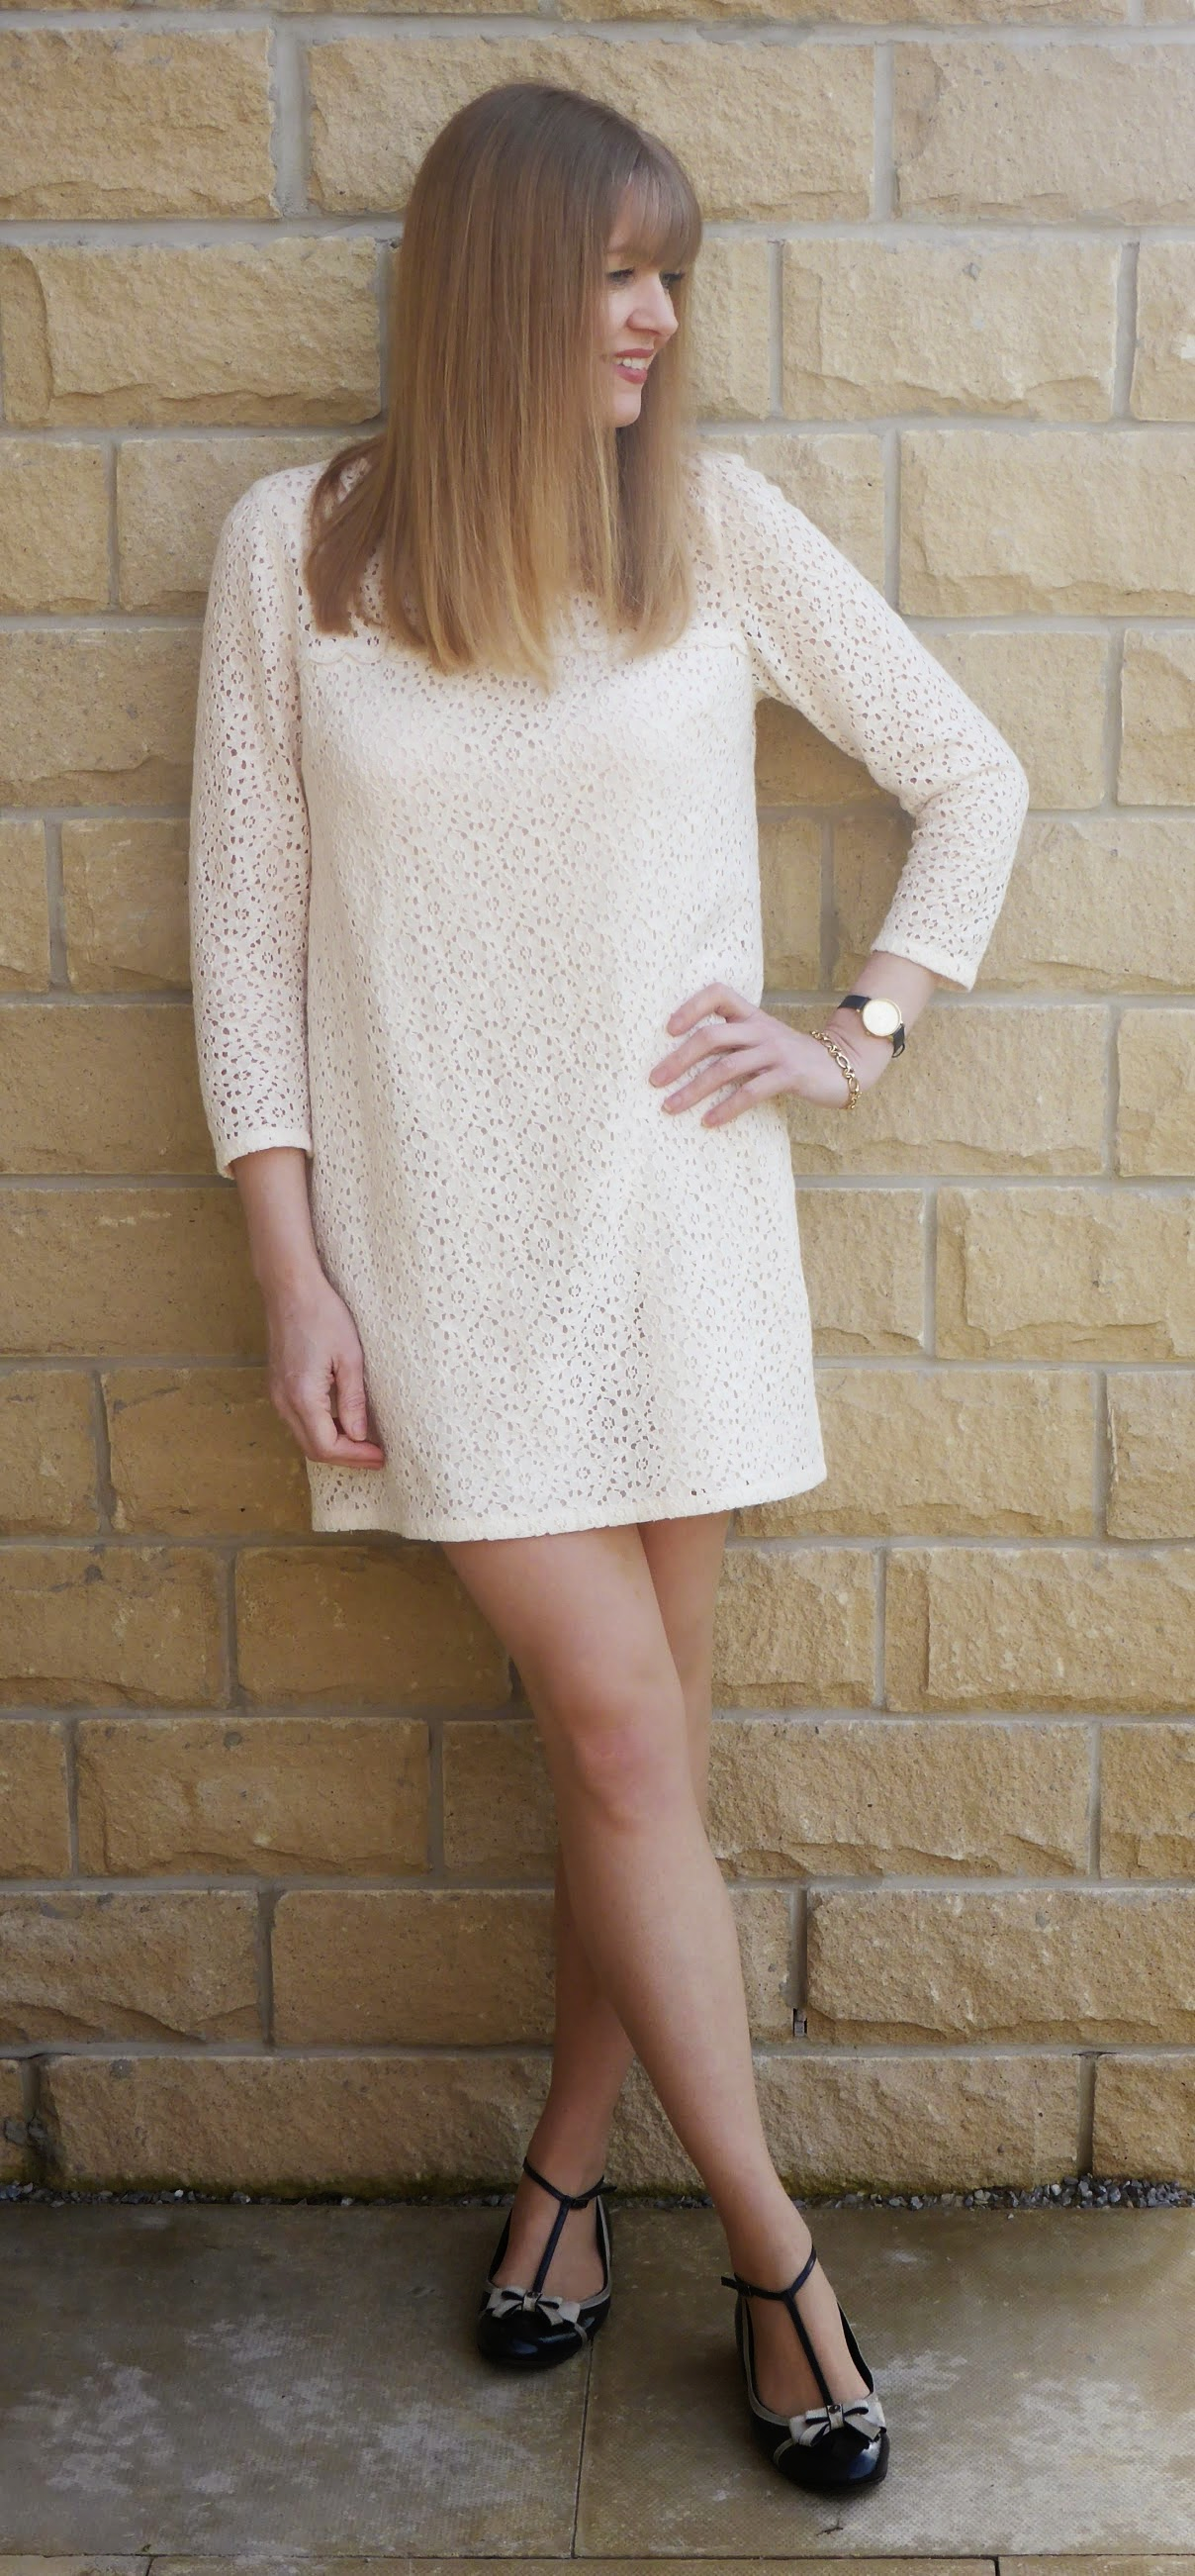 What Lizzy Loves, over 40 fashion blogger wears Jack Wills cream lace shift dress with Mulberry flat May Jane shoes